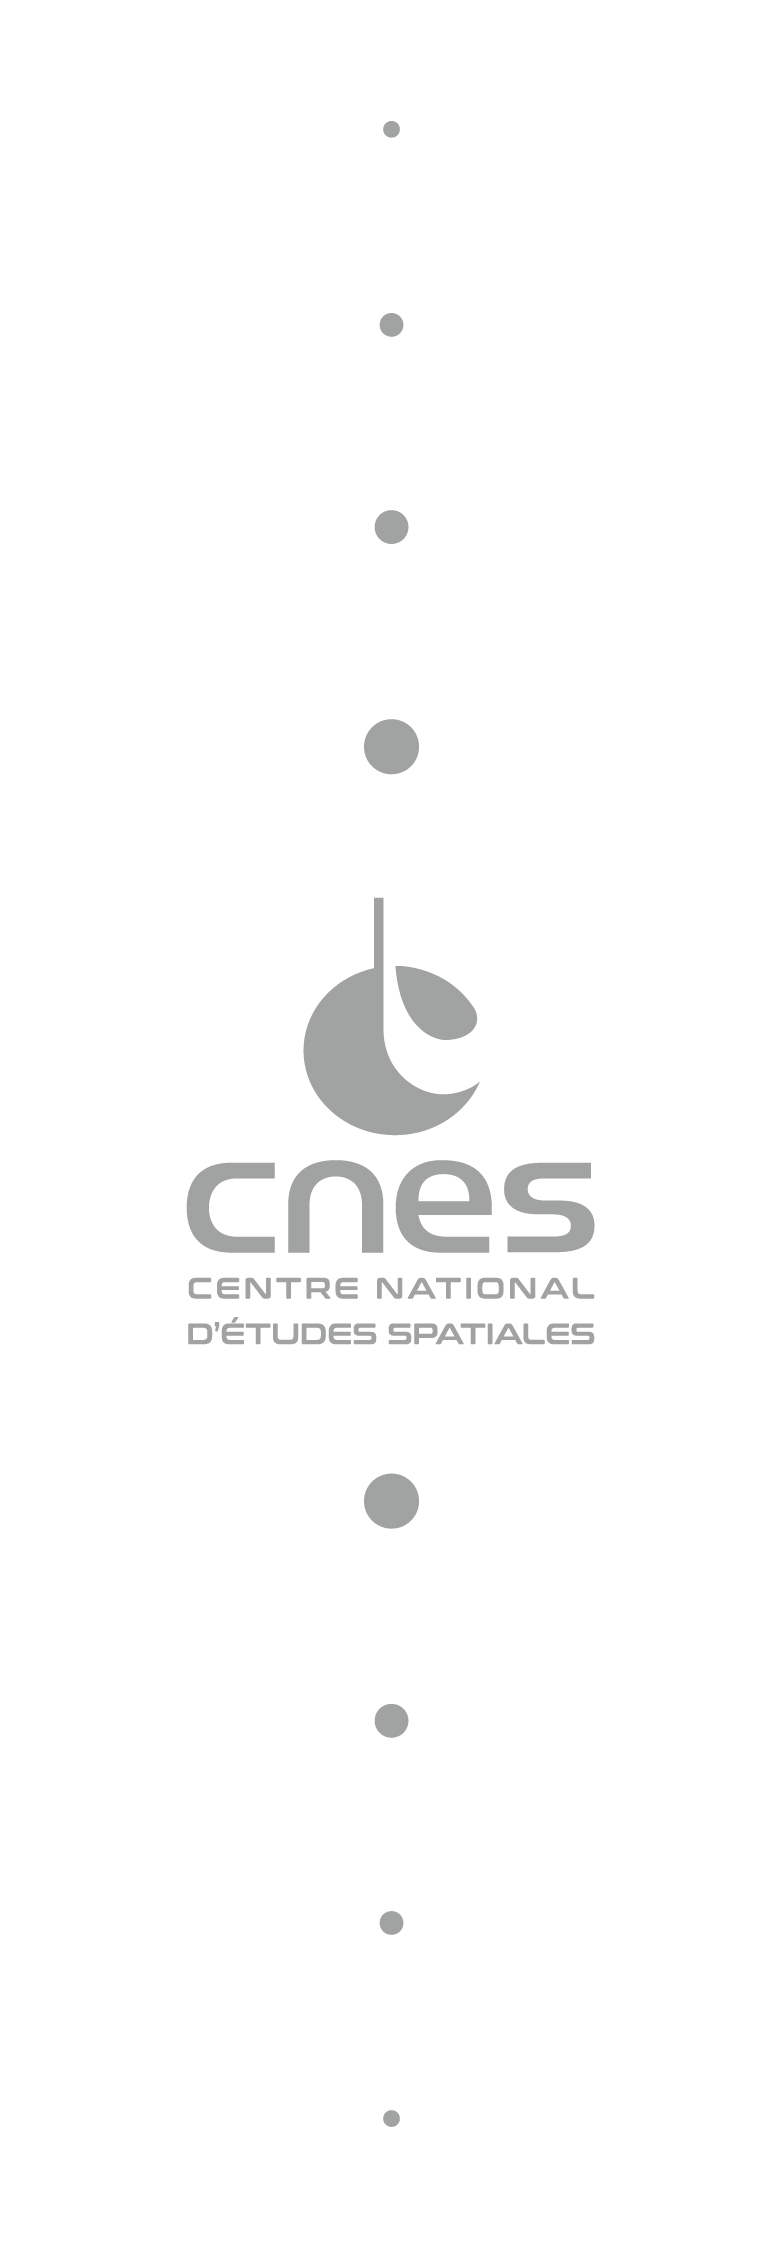 is_logo_2017_logo_charte_carre_gris.png